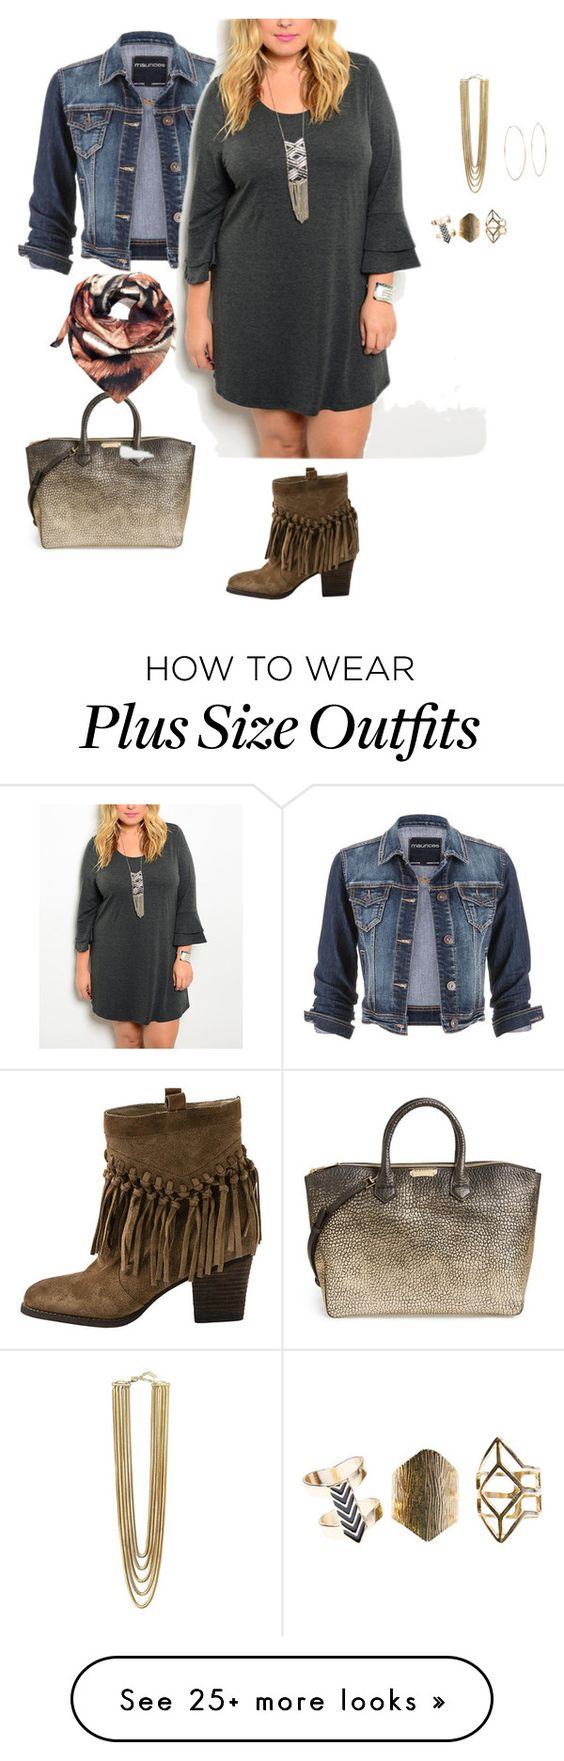 """plus size pretty girl fall"" by kristie-payne on Polyvore featuring Sbicca, maurices, Burberry, Joanna Allsop, Michael Kors, Vince Camuto, Wet Seal and plus size dresses:"